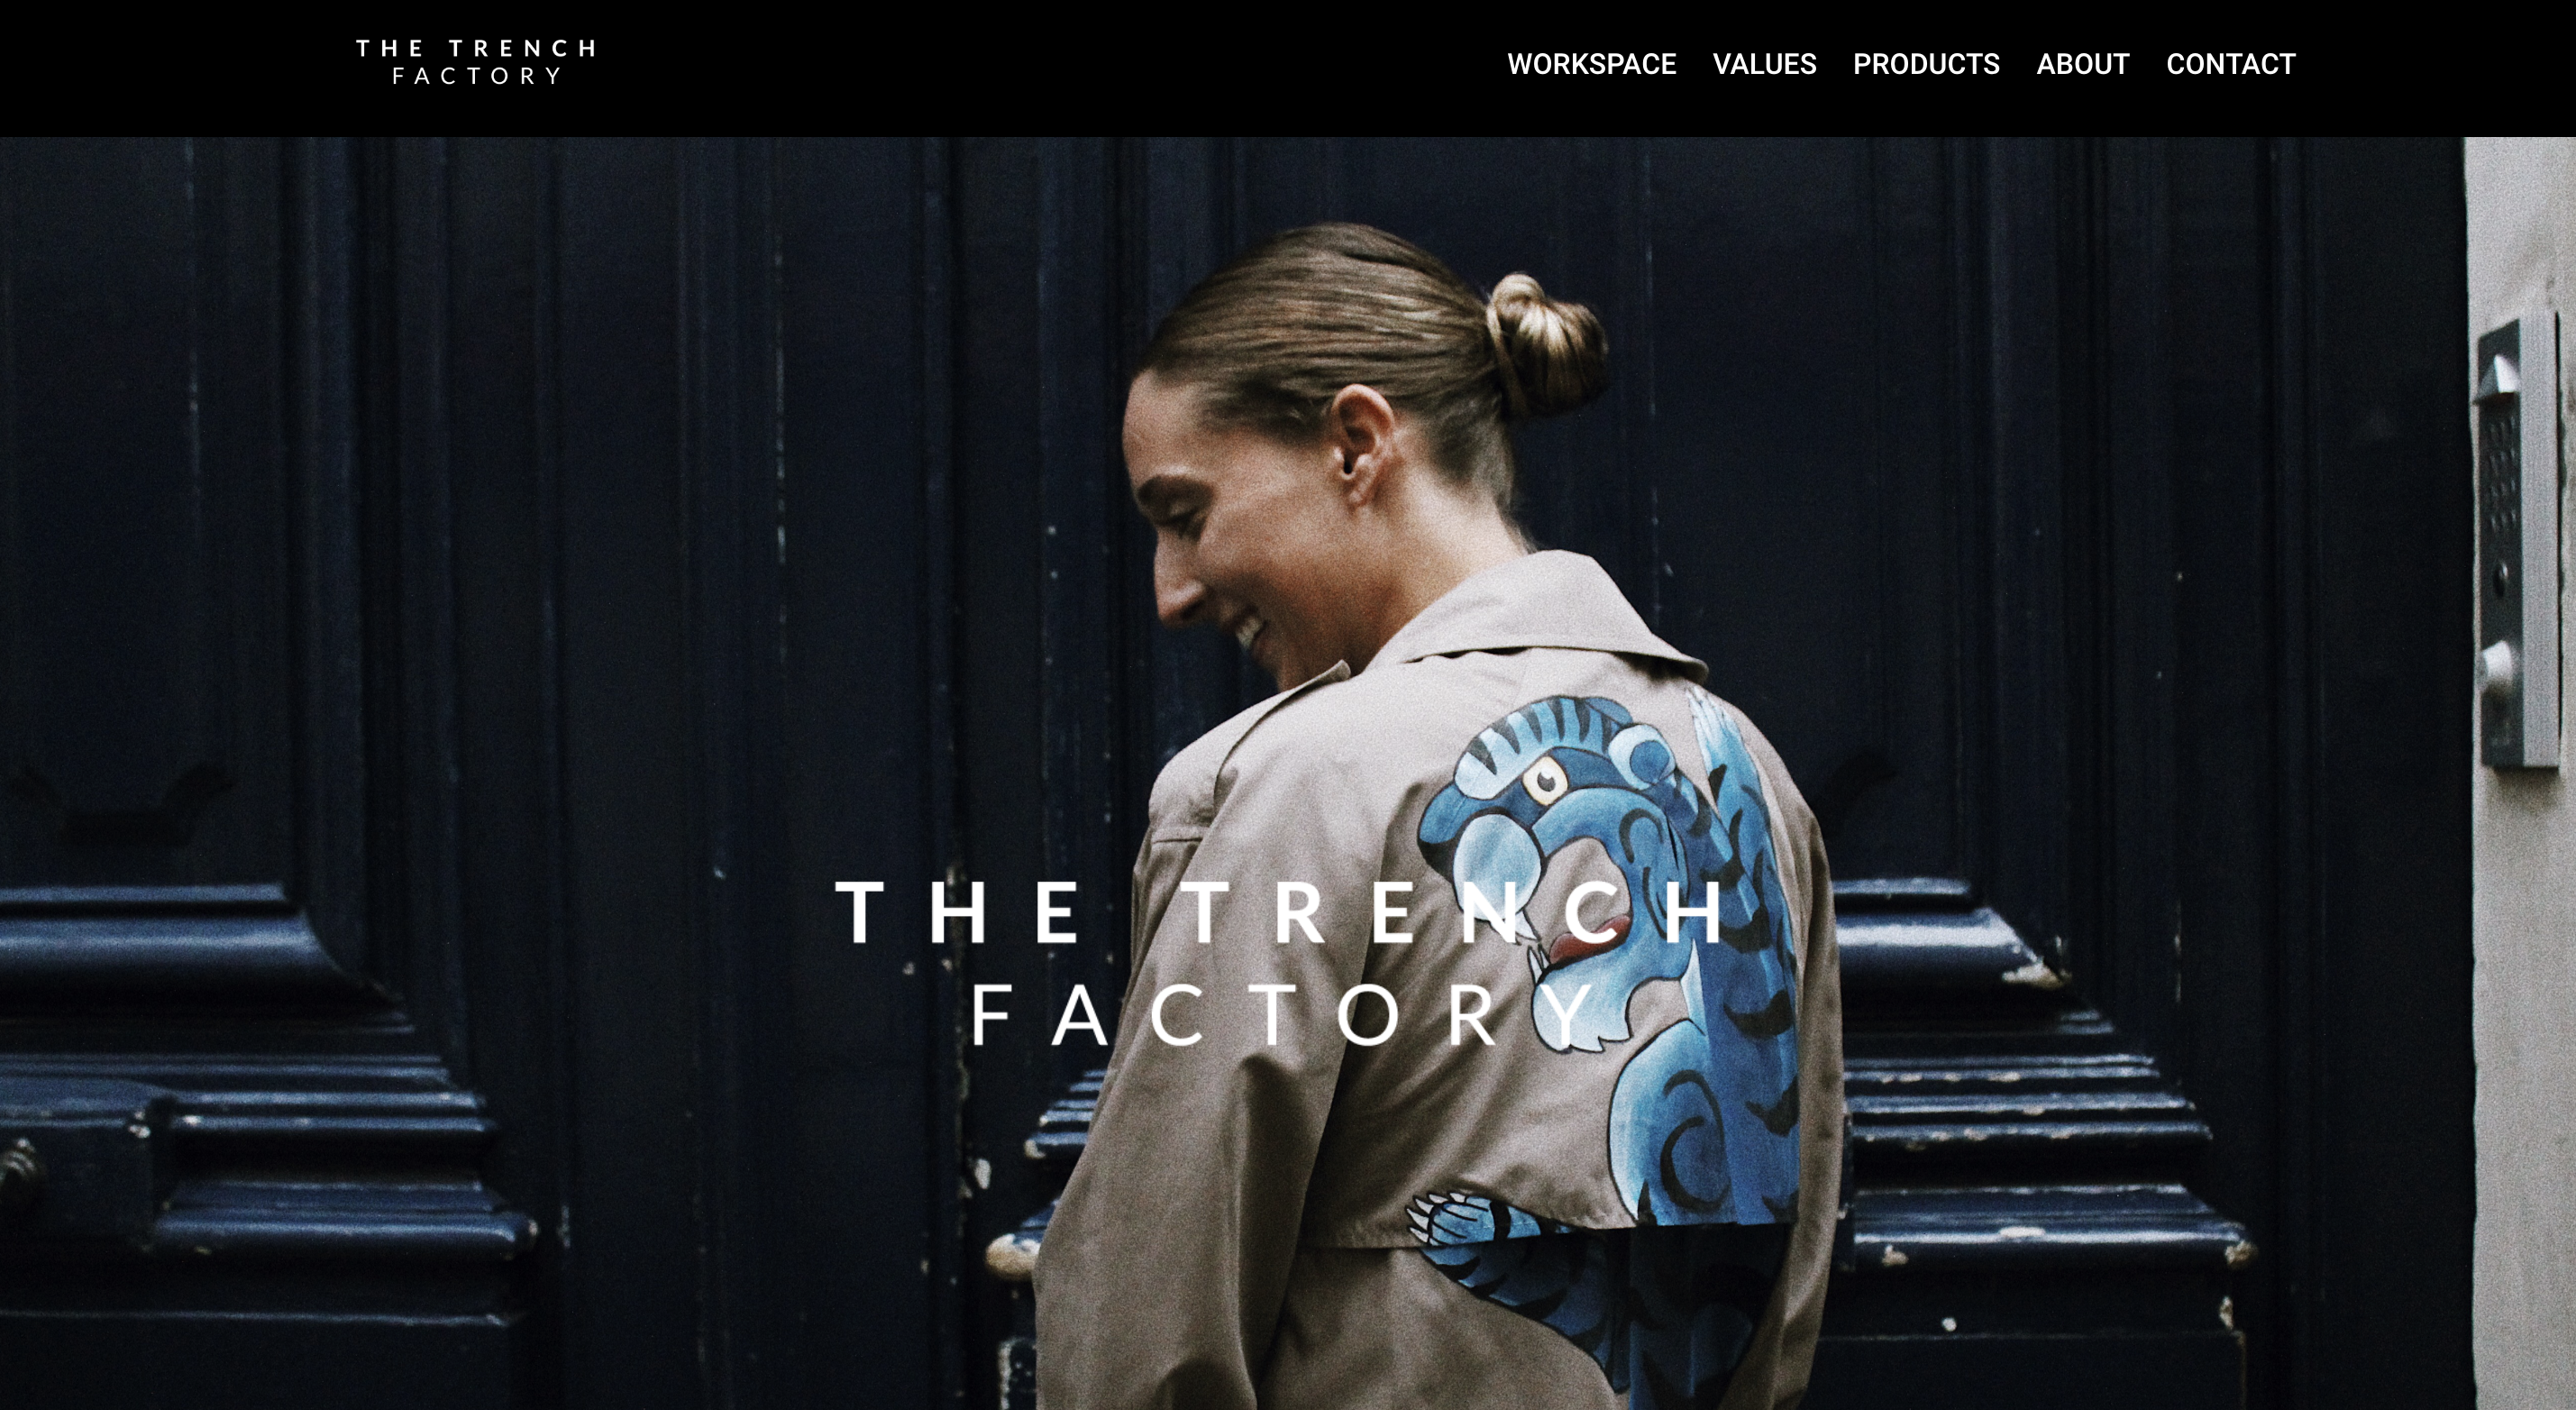 The Trench Factory